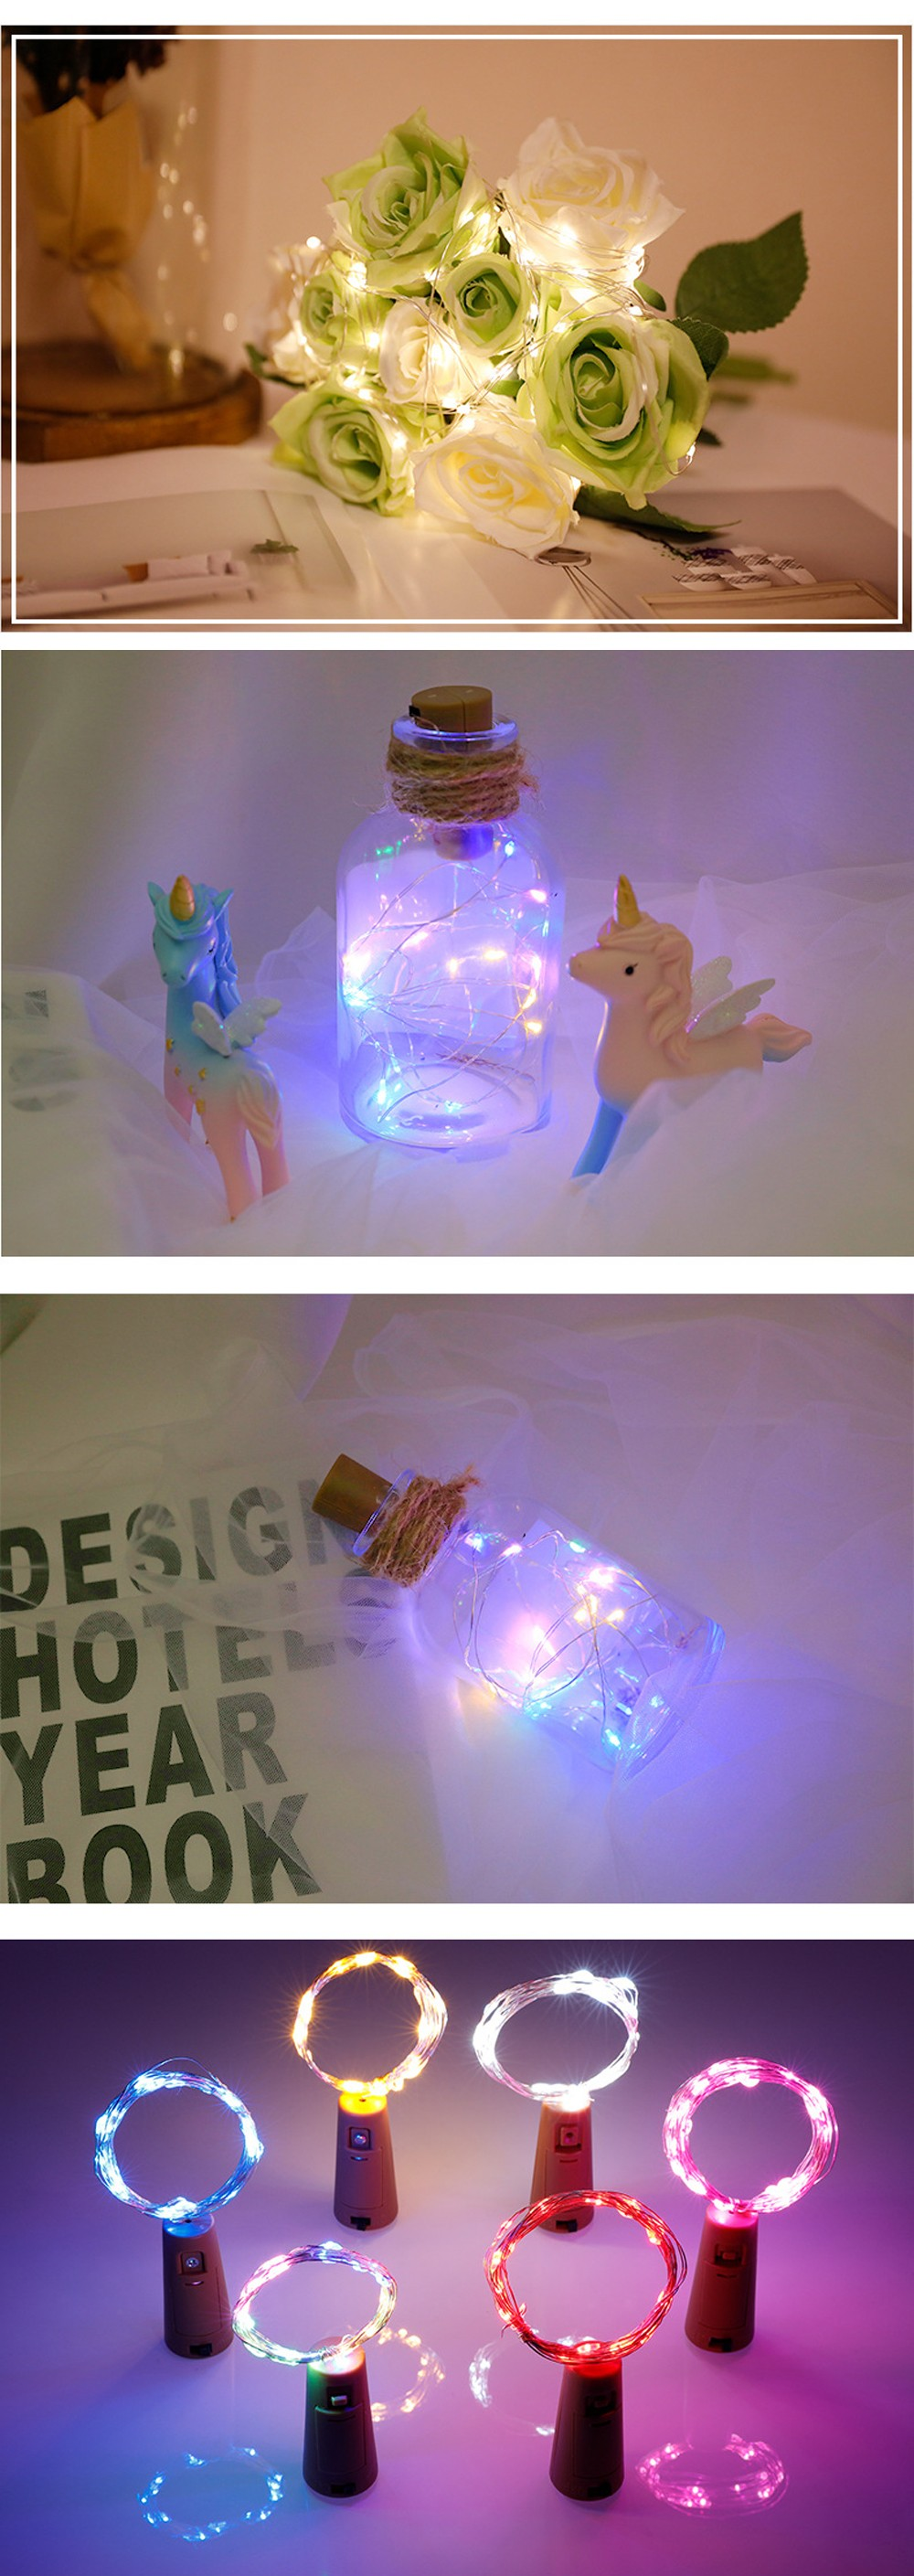 Wine Bottle Stopper LED Decorative String Light Copper Wire Holiday Lighting 2M 20 Lights - Yellow Warm White